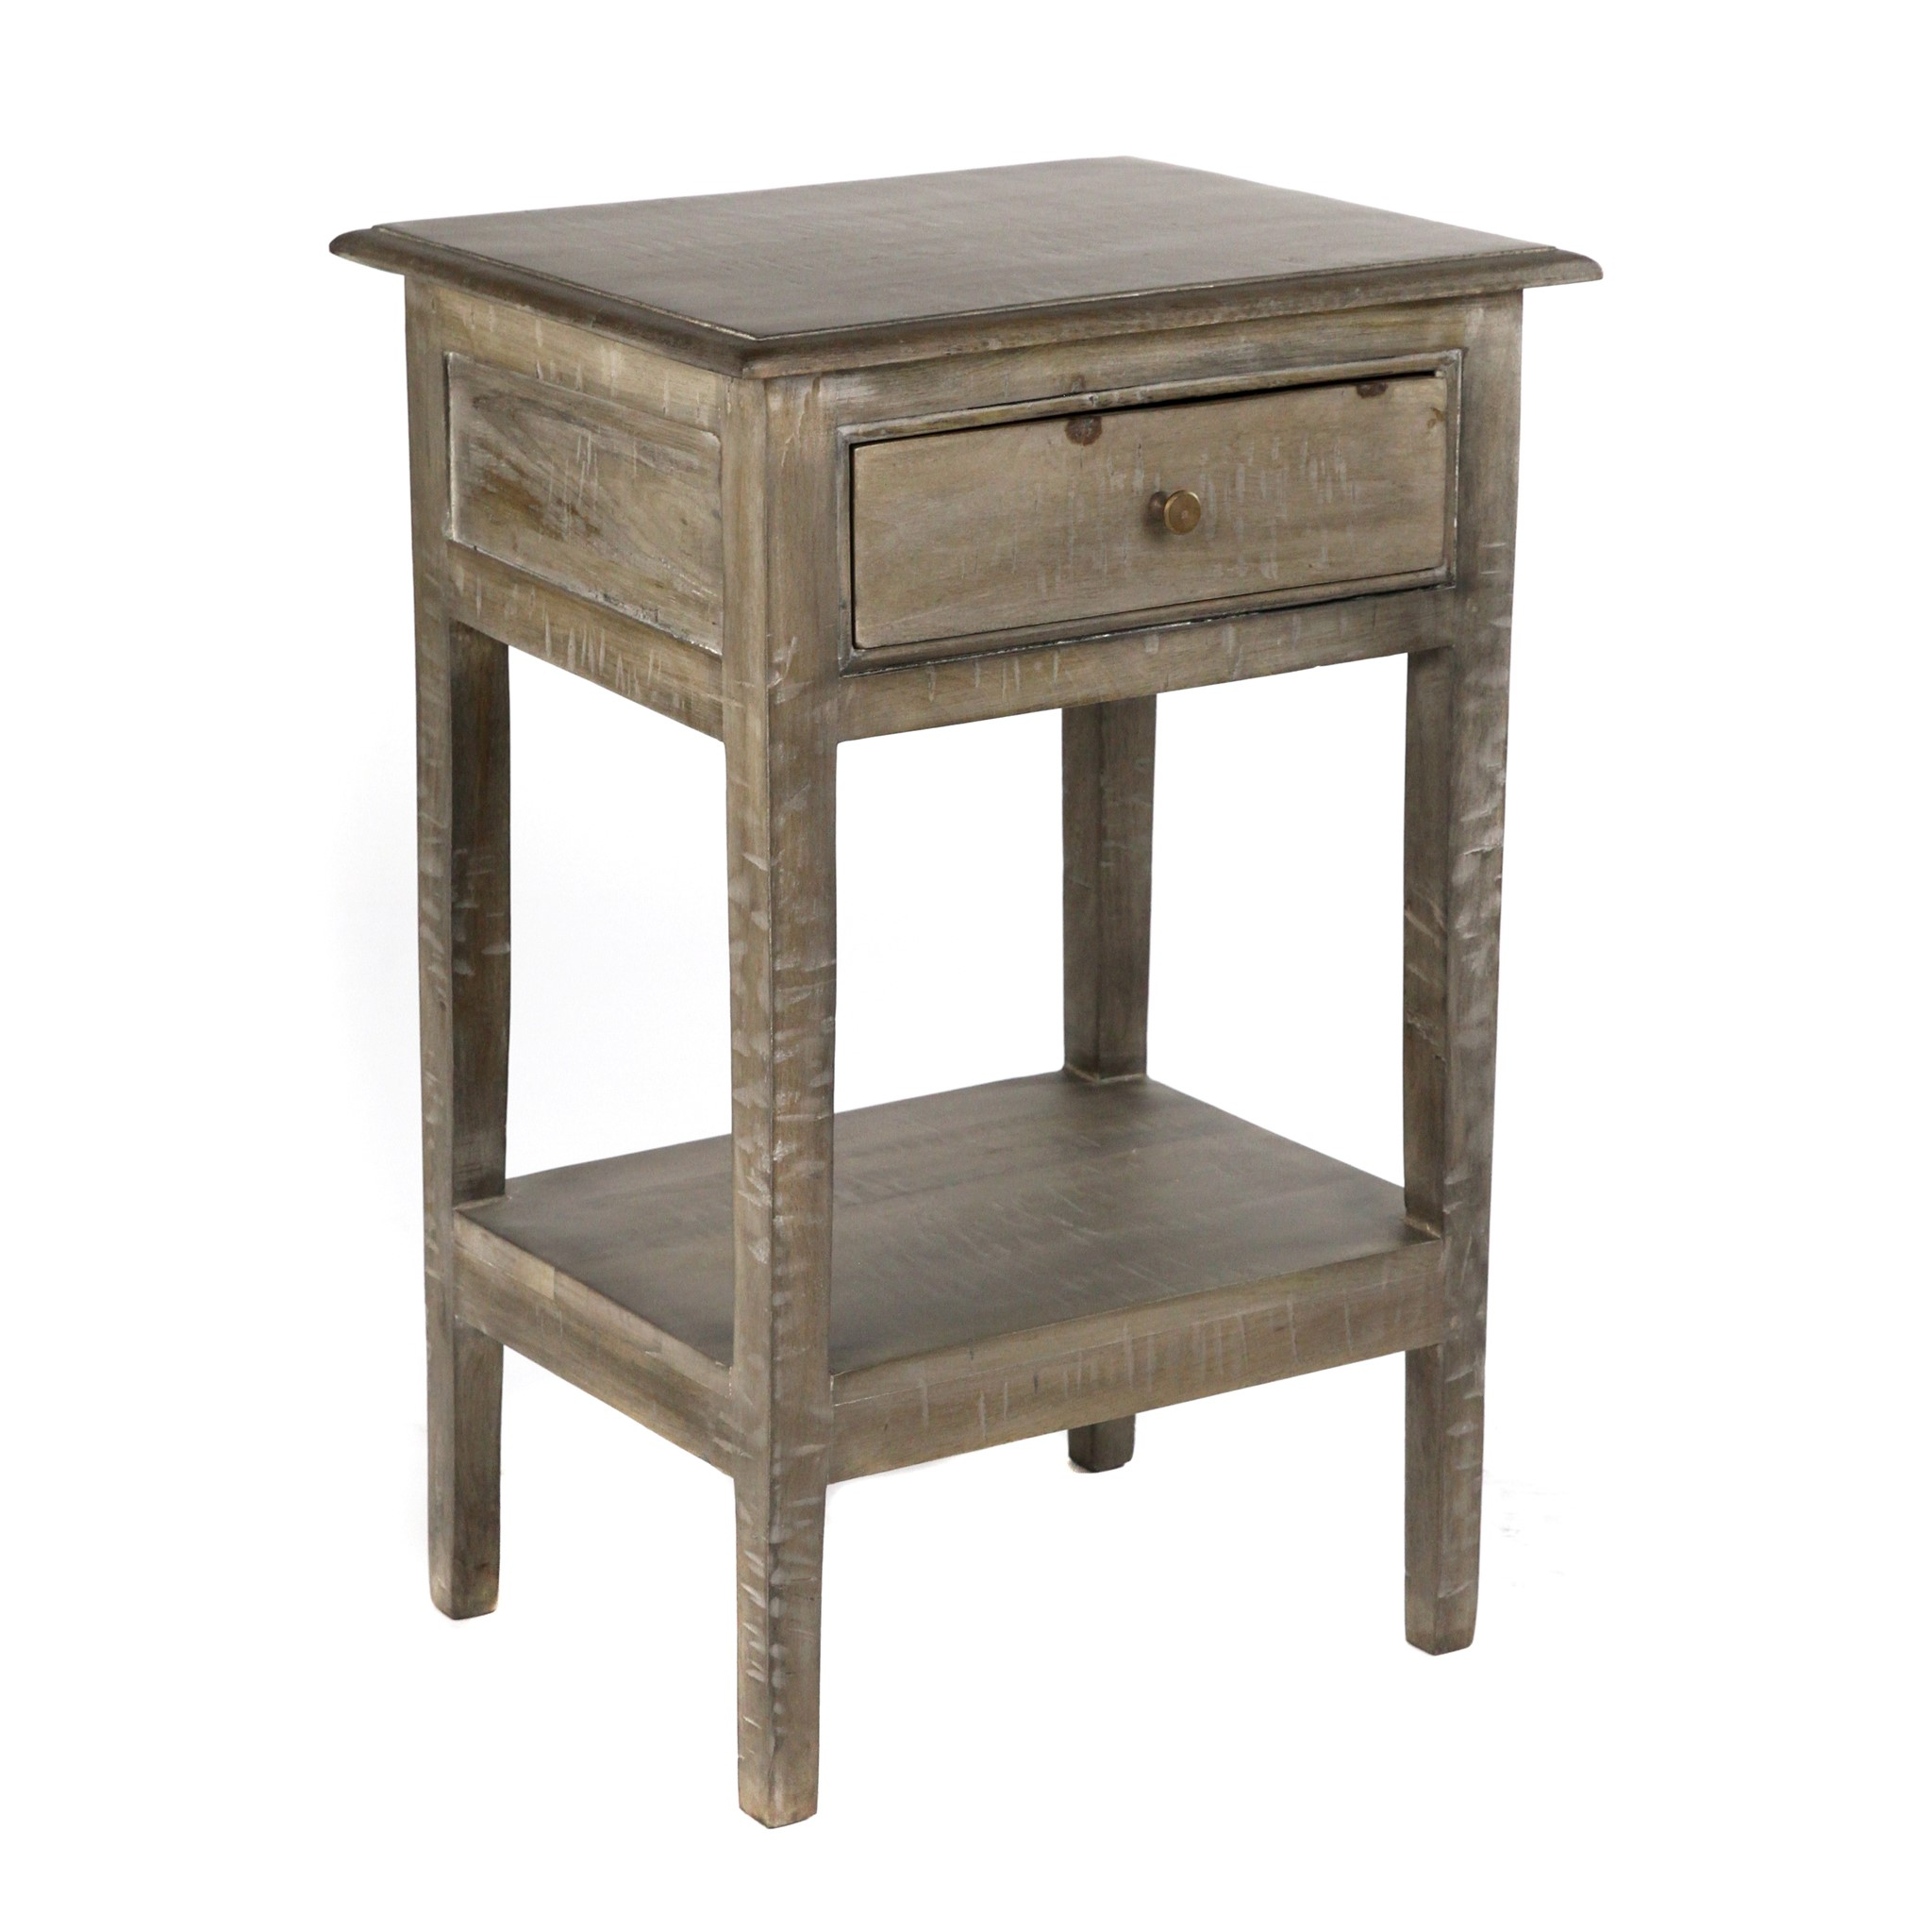 Shaker Table w/Shelf 20x16x30 SAL